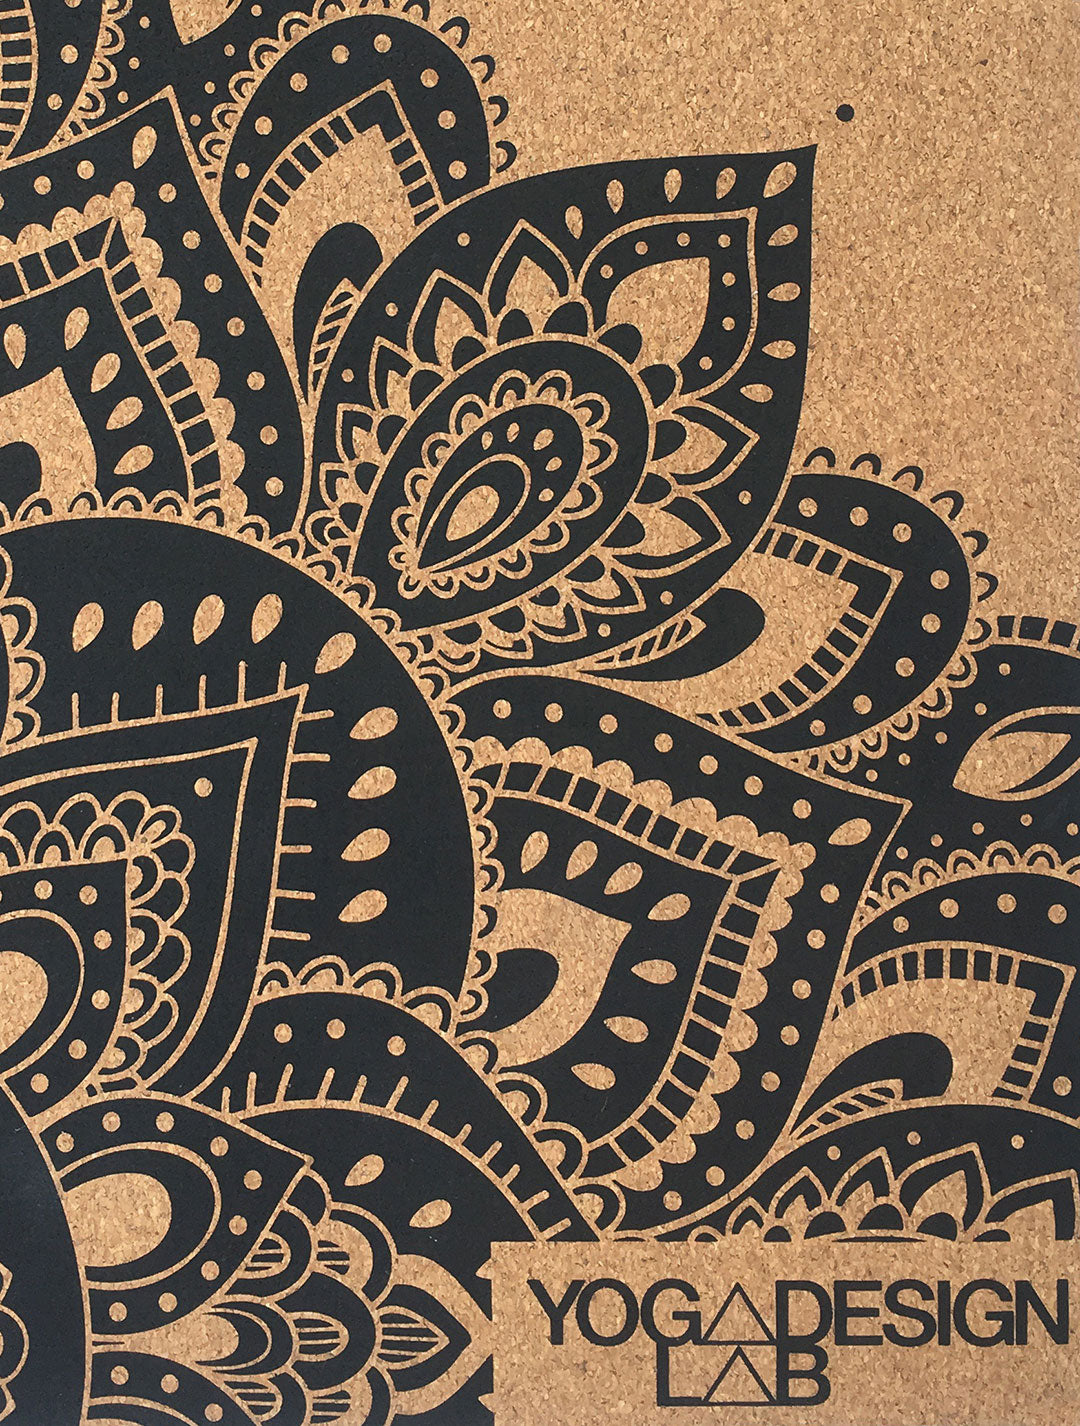 Travel Cork Mat Mandala Black by Yoga Design Lab - Psylo Fashion